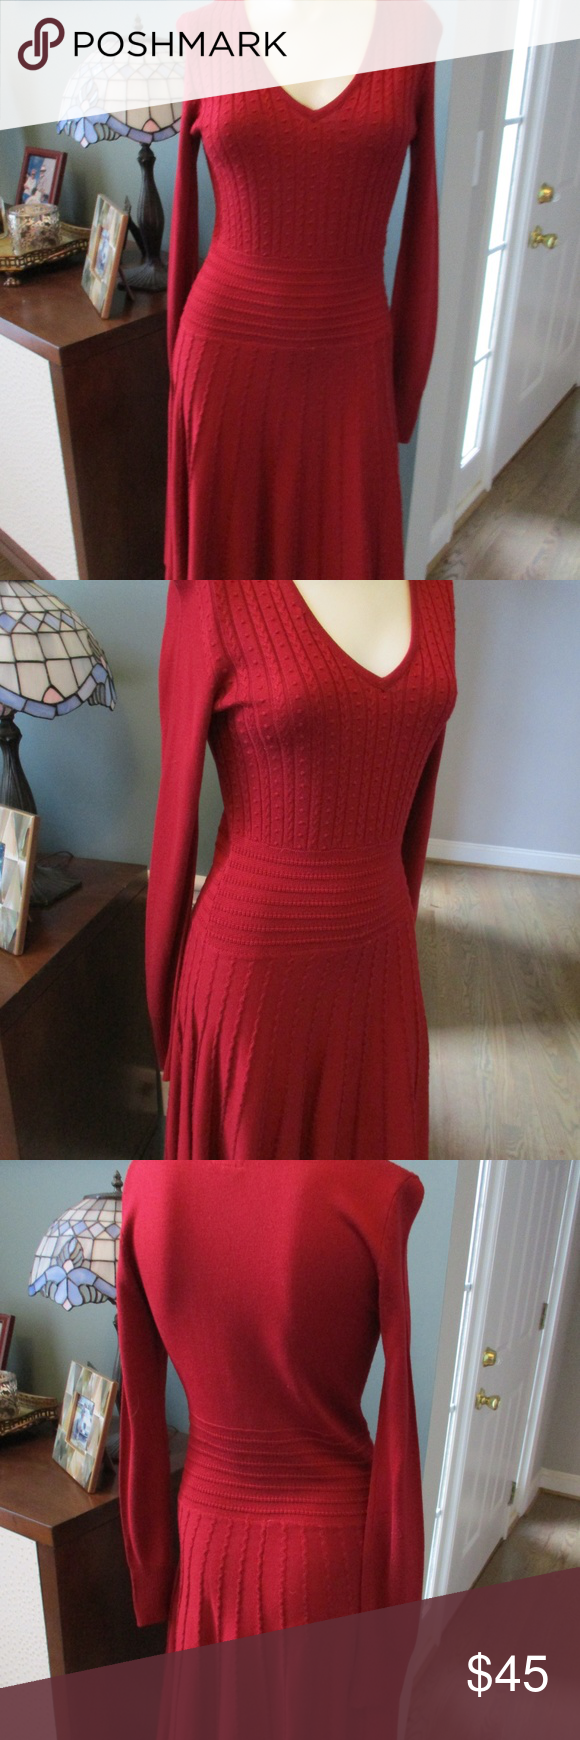 Vince Camuto Red Acrylic Fit Flare Dress S Beautiful Long Sleeve Dress From Vince Camuto In Size Small 100 Acrylic Fit Flare Dress Flare Dress Clothes Design [ 1740 x 580 Pixel ]